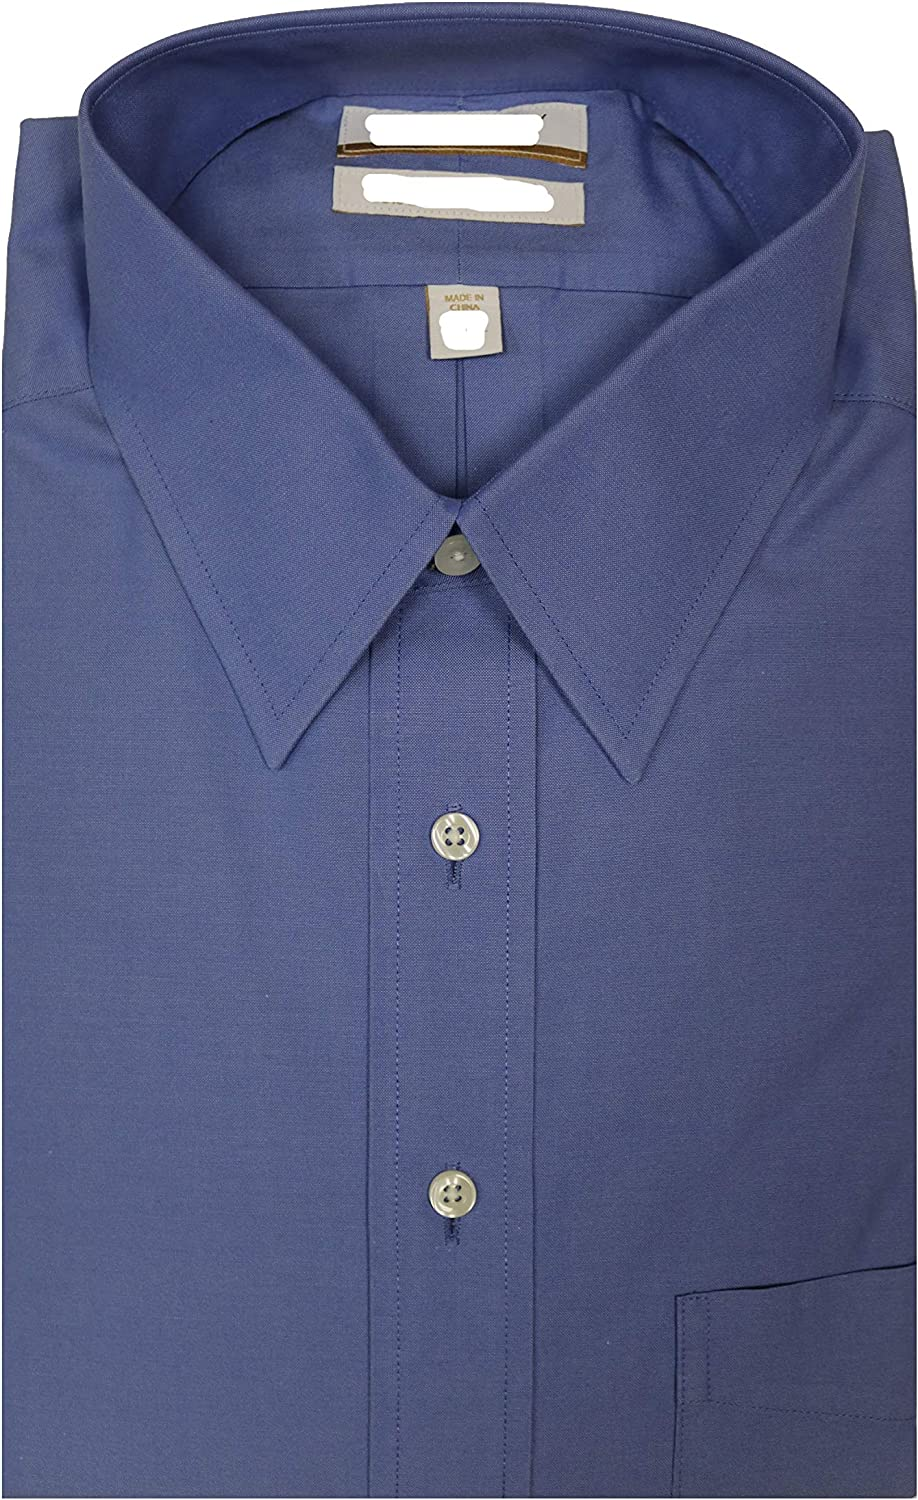 Gold Label Roundtree & Yorke Non-Iron Regular Big Tall Point Collar Solid Dress Shirt Y35DG008 Baltic Blue